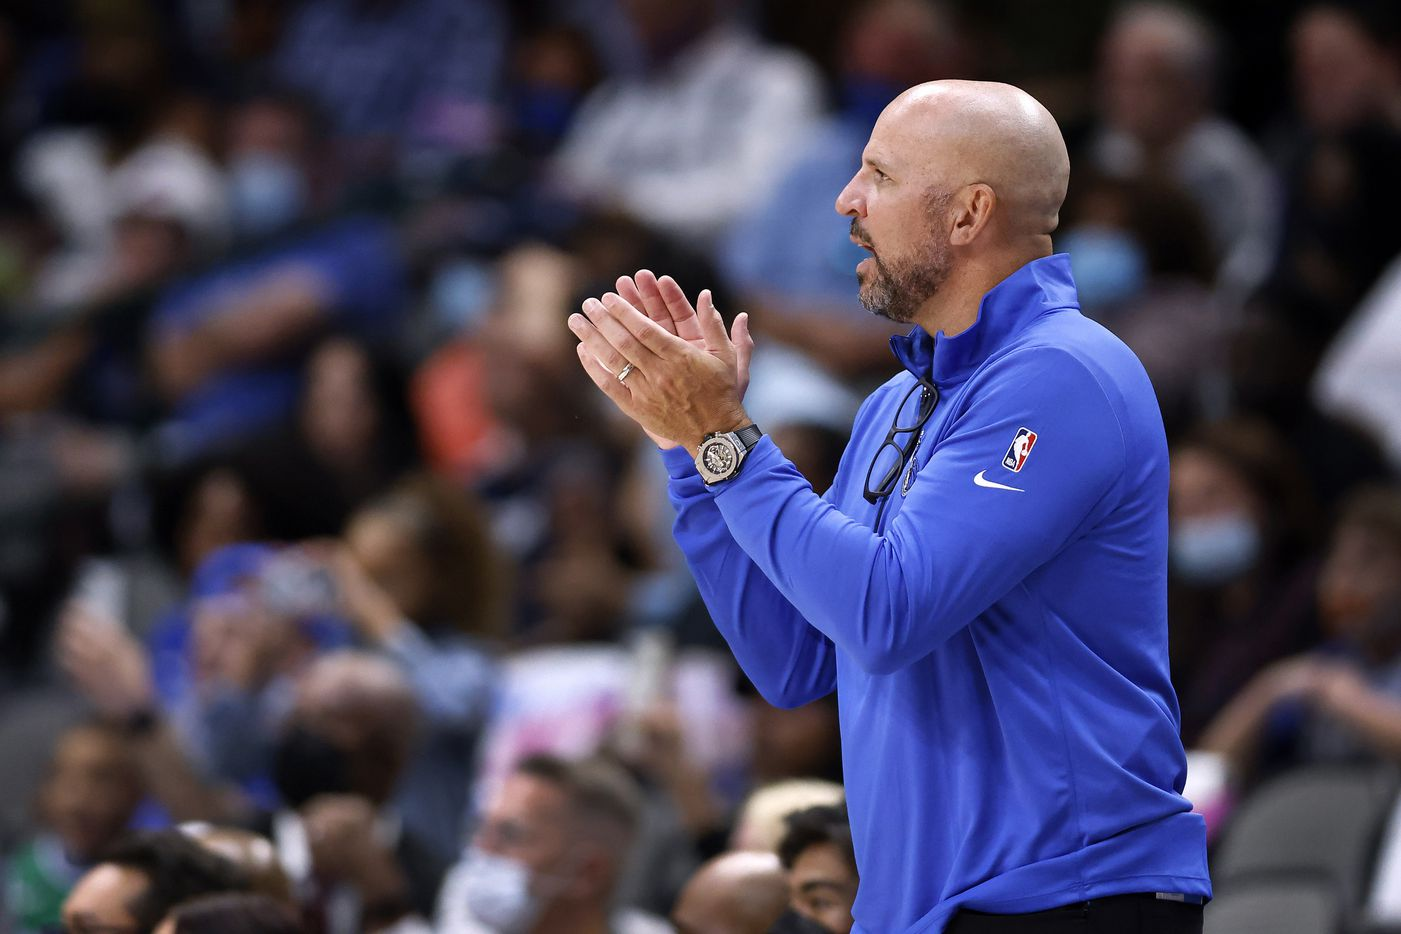 Dallas Mavericks head coach Jason Kidd applauds his team face the Utah Jazz in the second half at the American Airlines Center in Dallas, Wednesday, October 6, 2021. The Mavericks defeated the Jazz, 111-101. (Tom Fox/The Dallas Morning News)